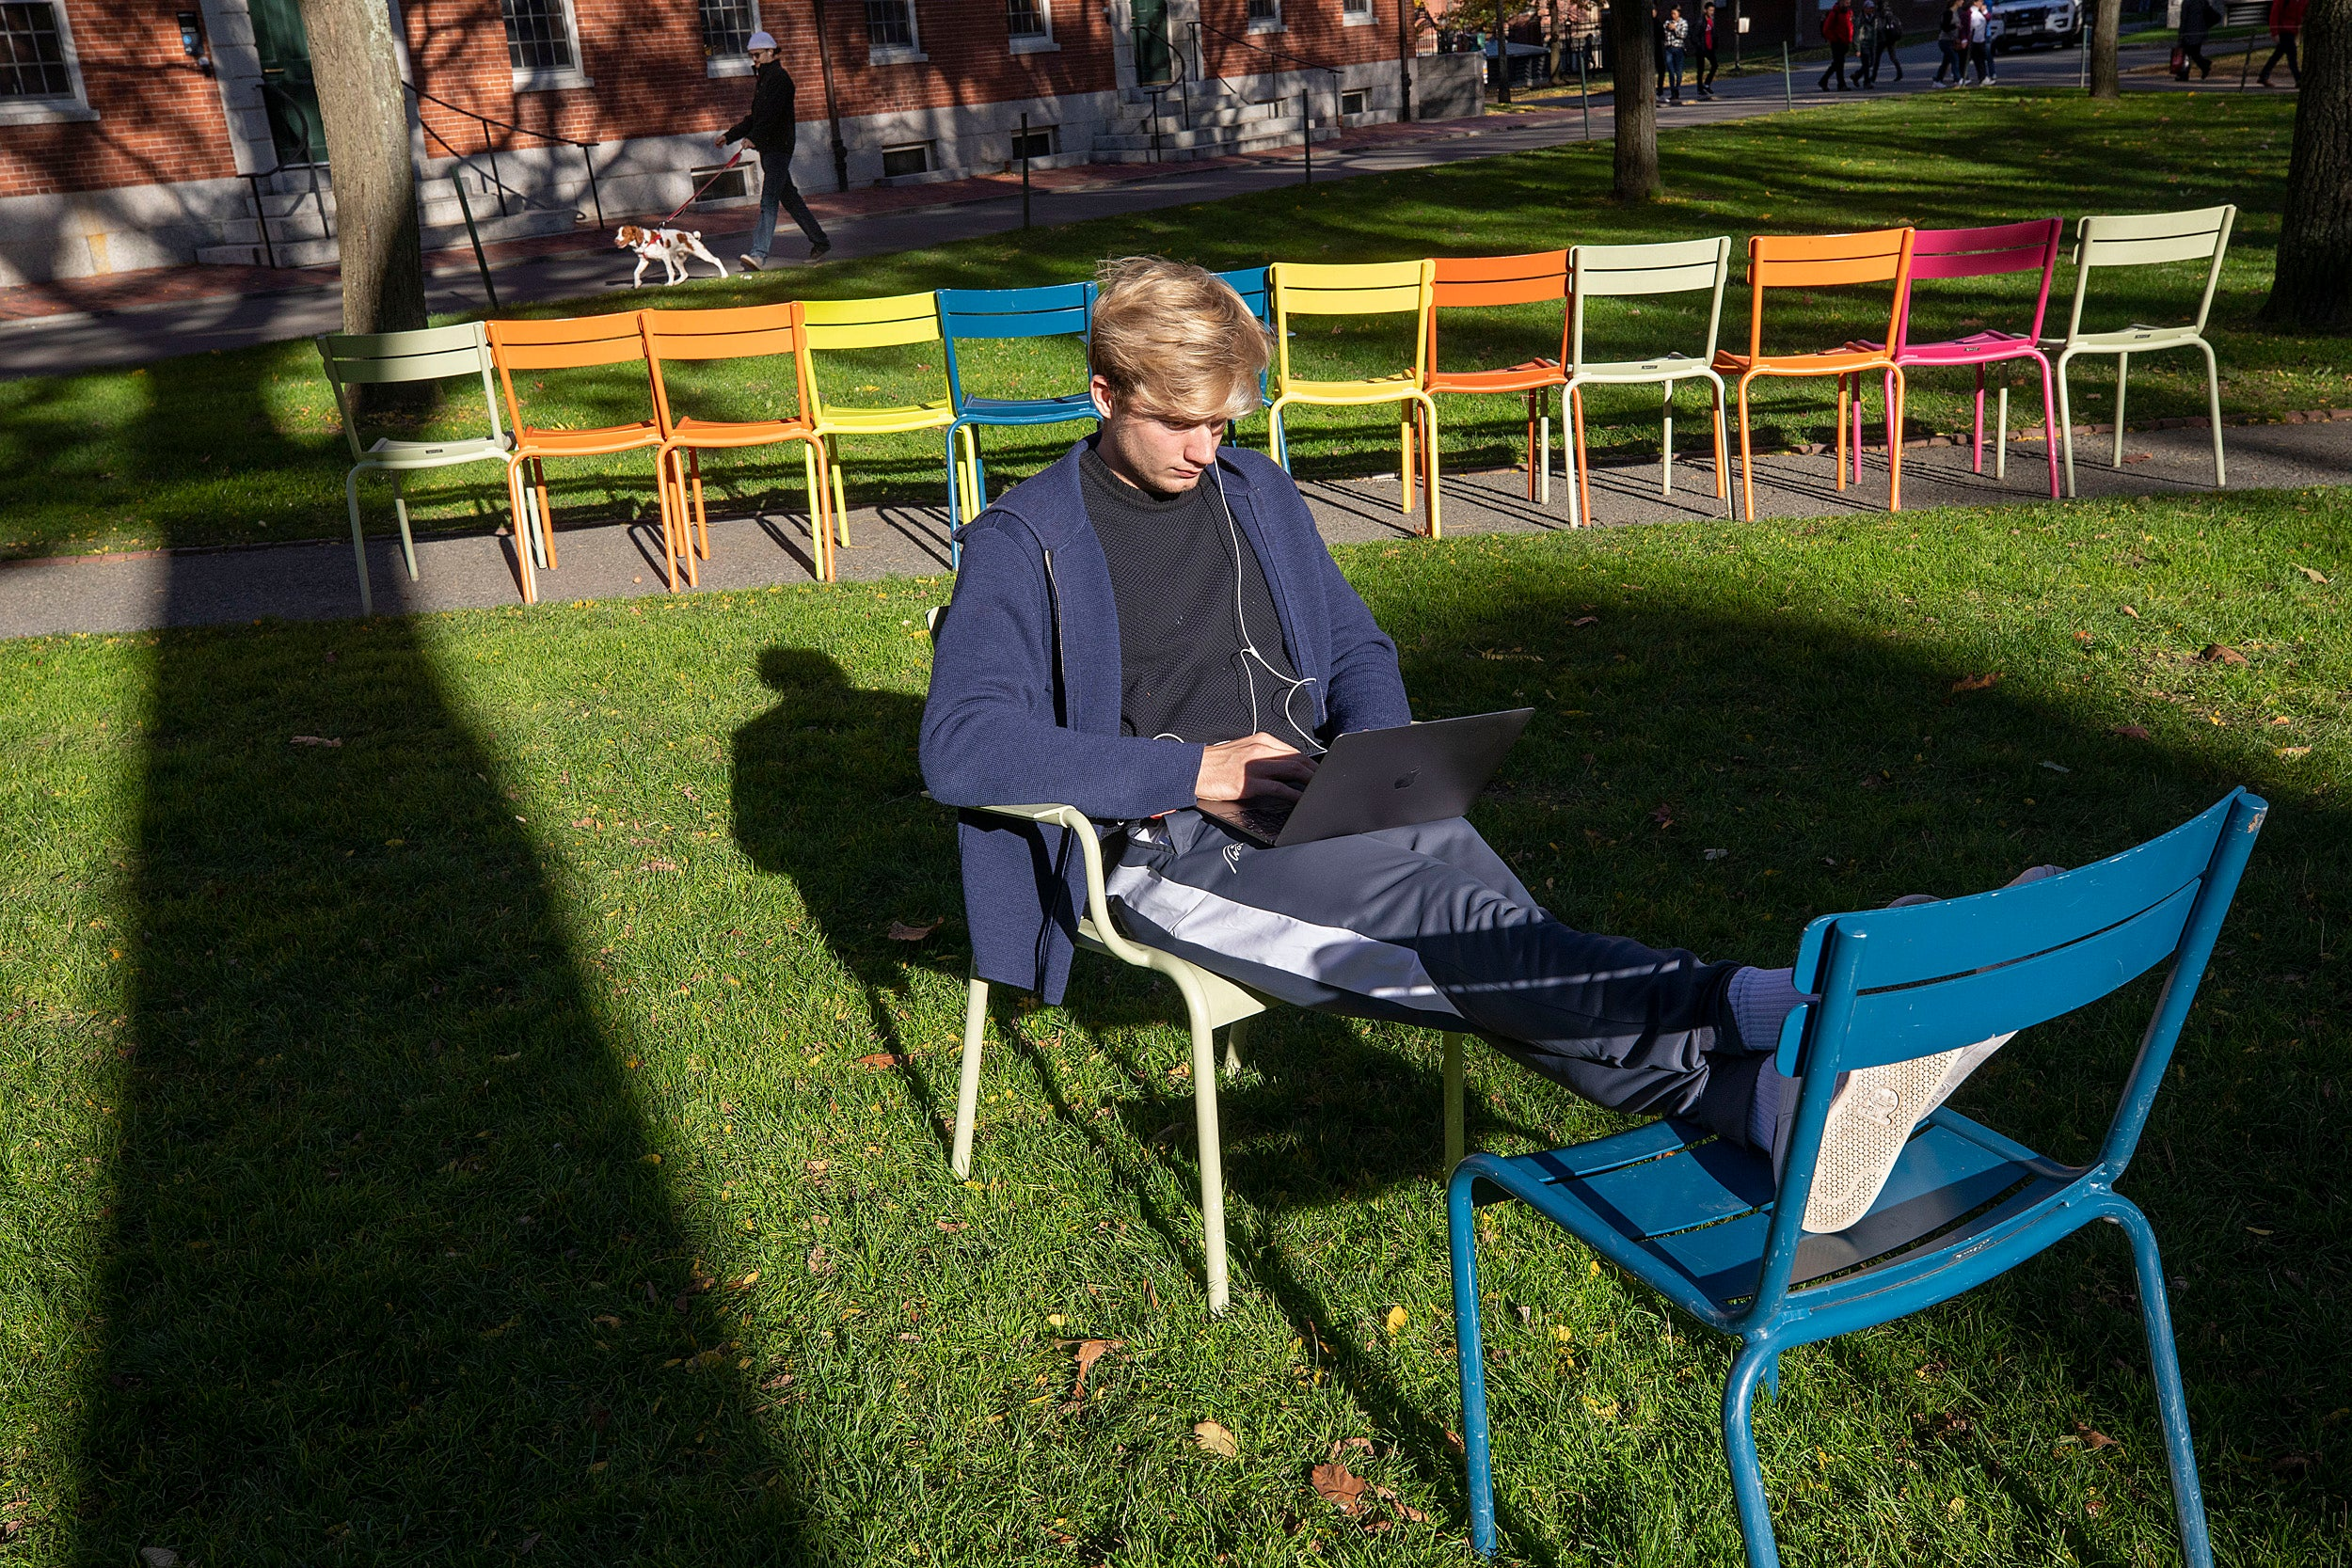 Student studying in the yard.